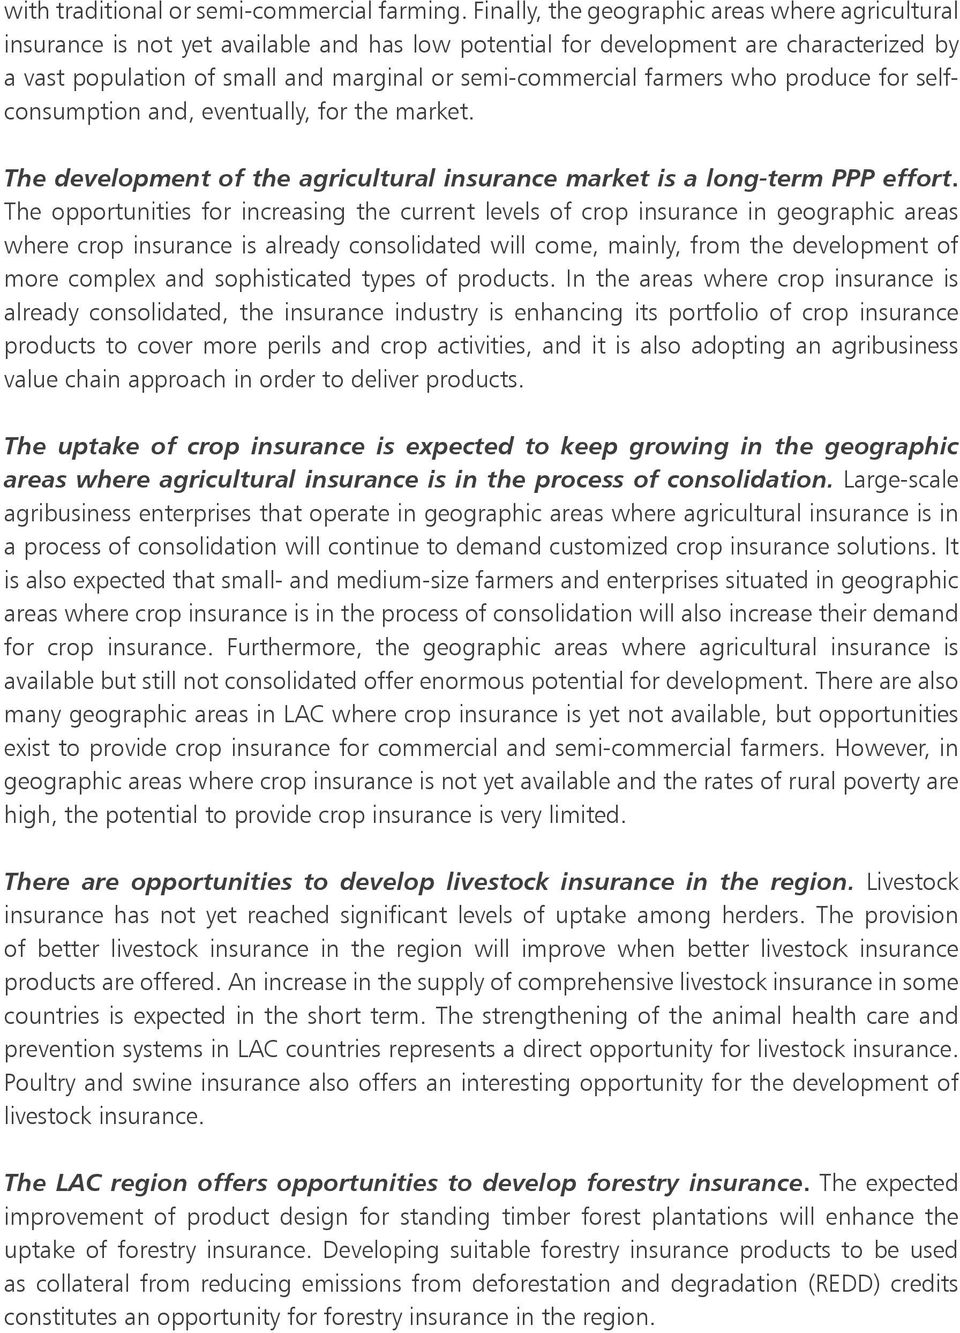 farmers who produce for selfconsumption and, eventually, for the market. The development of the agricultural insurance market is a long-term PPP effort.